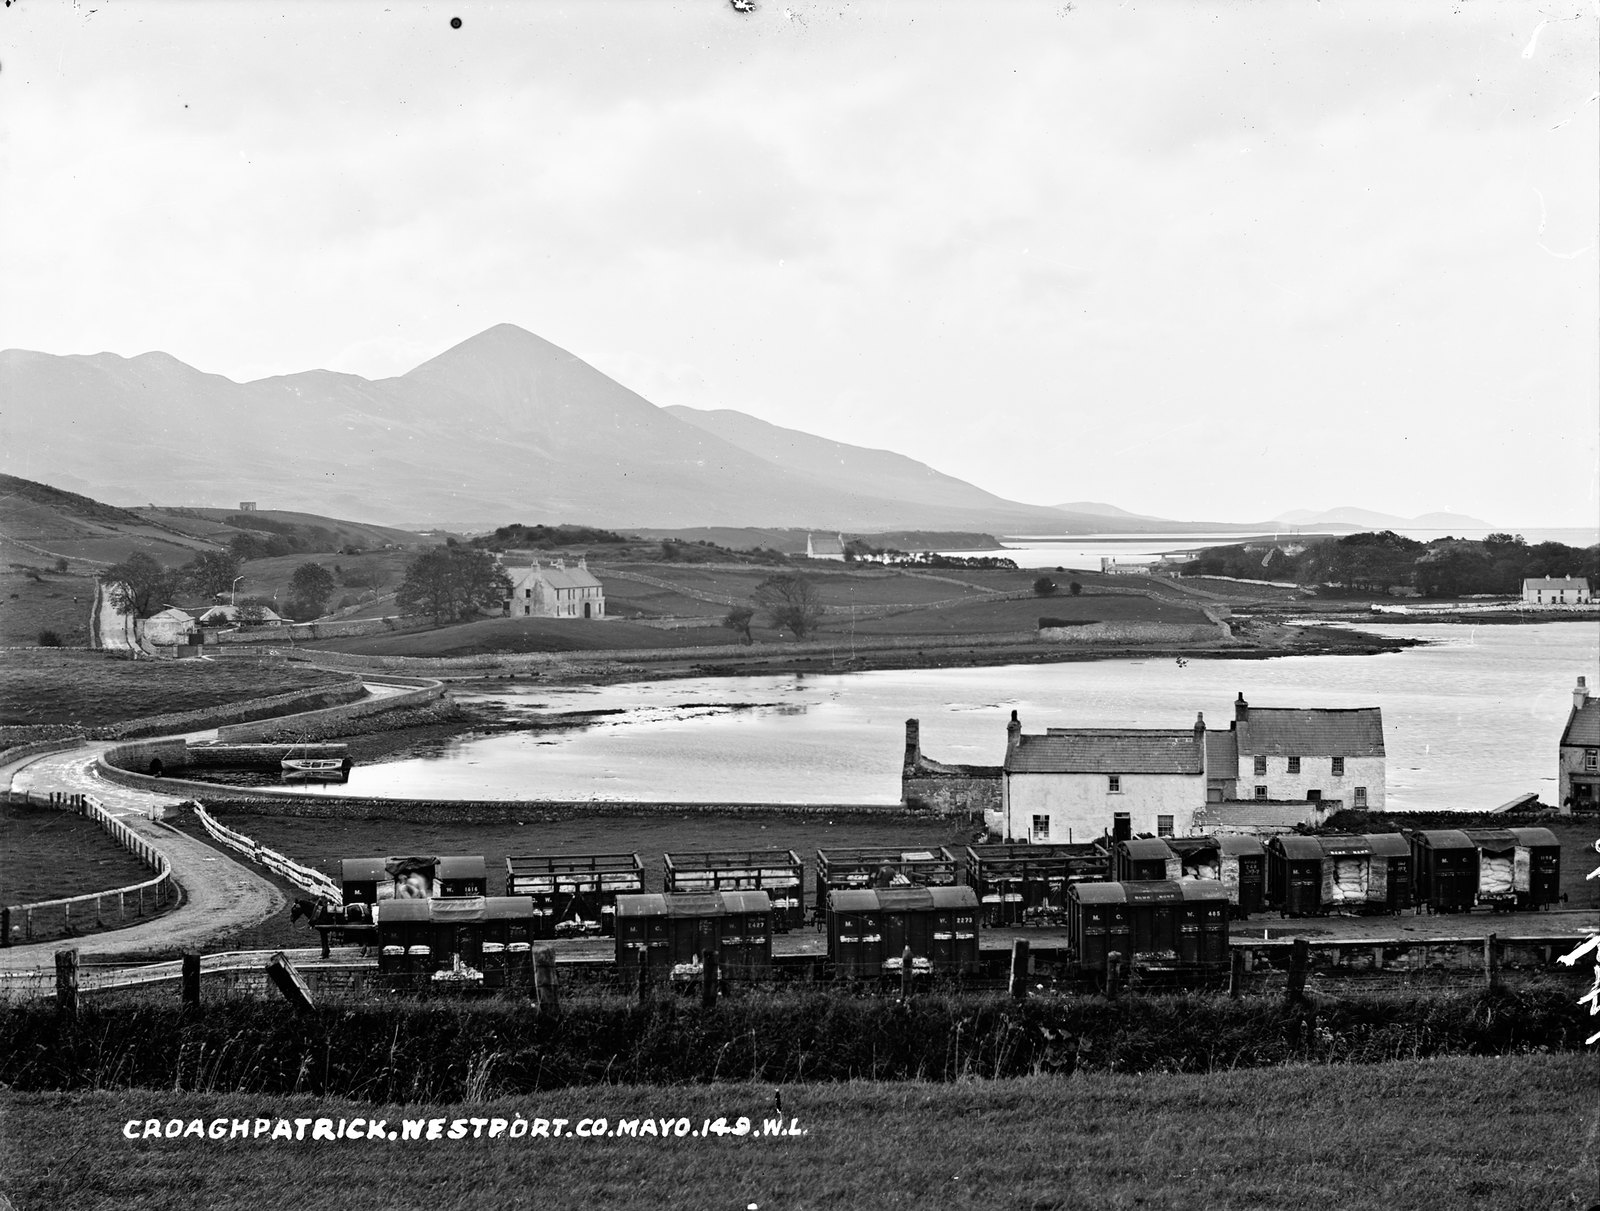 Croagh Patrick, Westport, Co. Mayo and a whole lot more. | by National Library of Ireland on The Commons